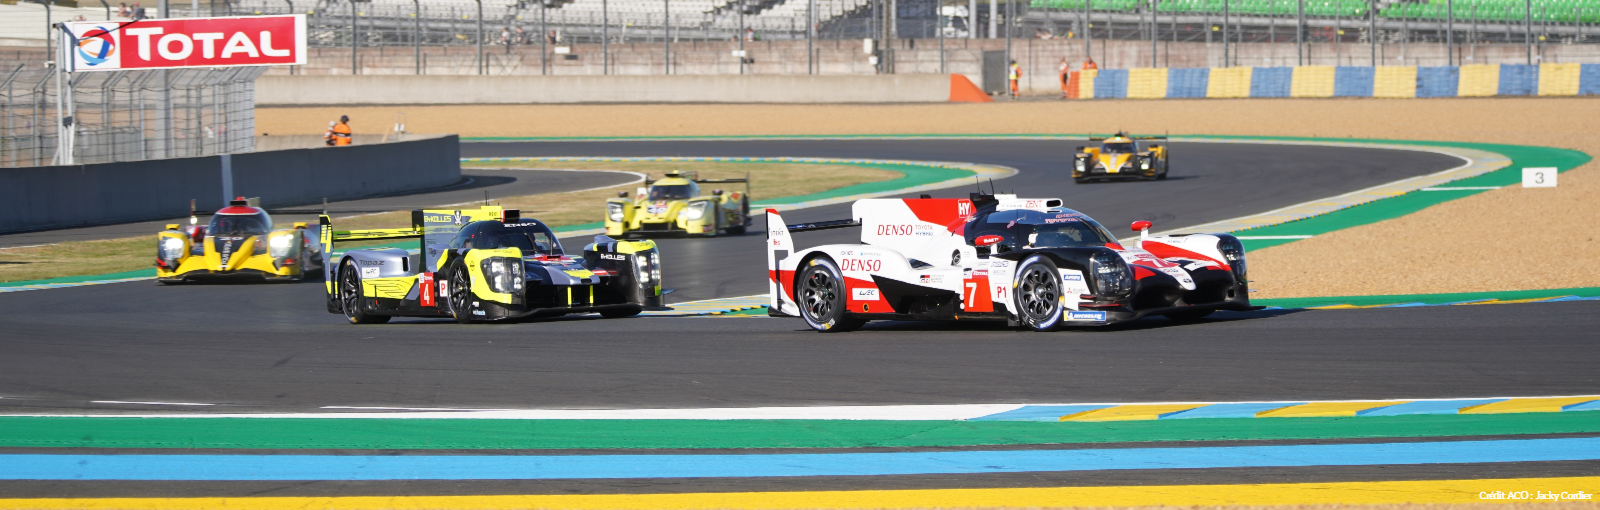 """24 HOURS OF LE MANS 2020: Creation of """"Hyperpole"""" for test days"""